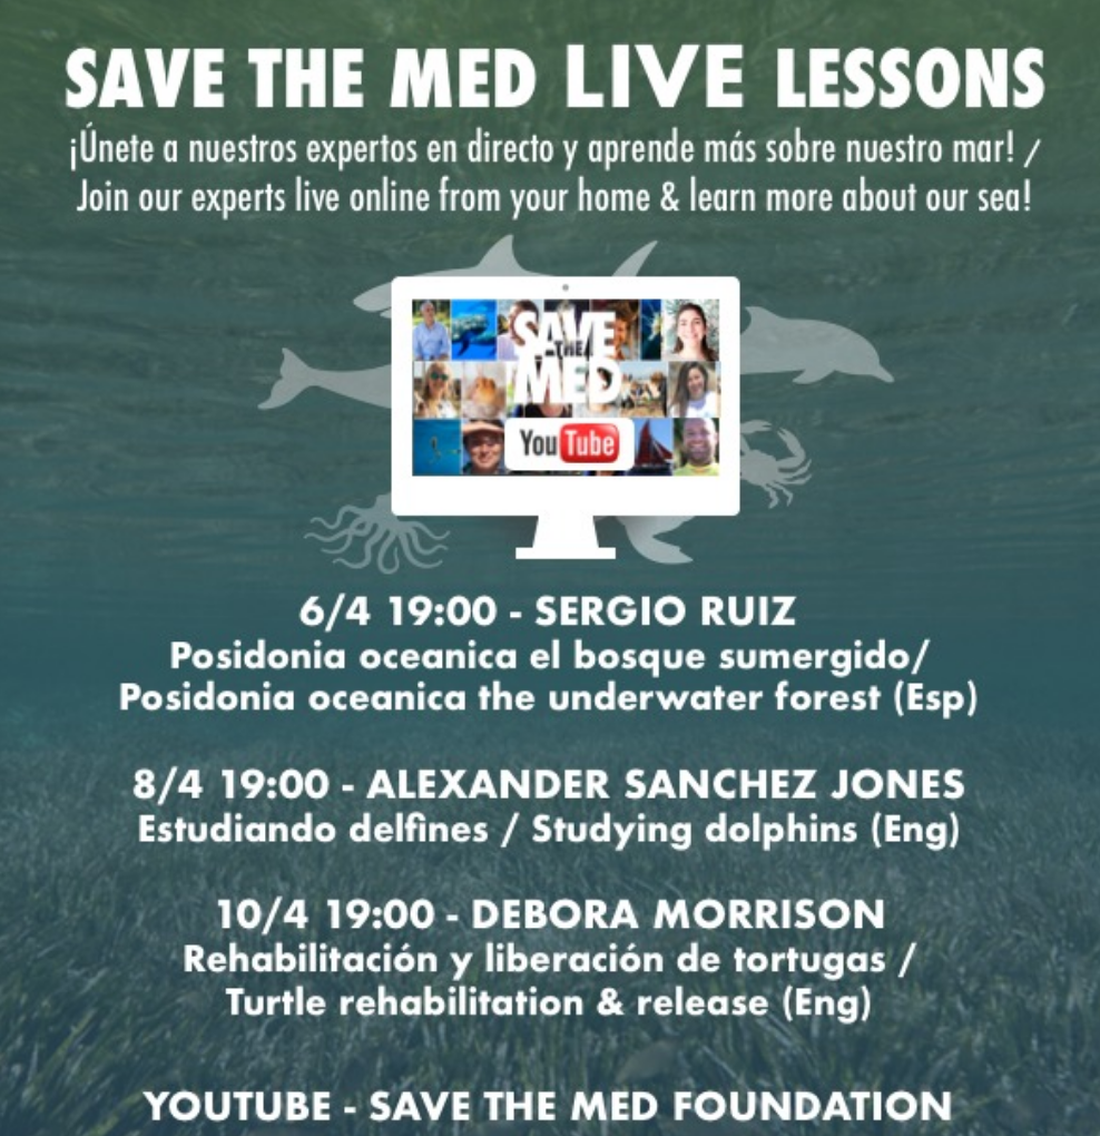 Save The Med LIVE Lessons a YouTube 6/4 - 10/4